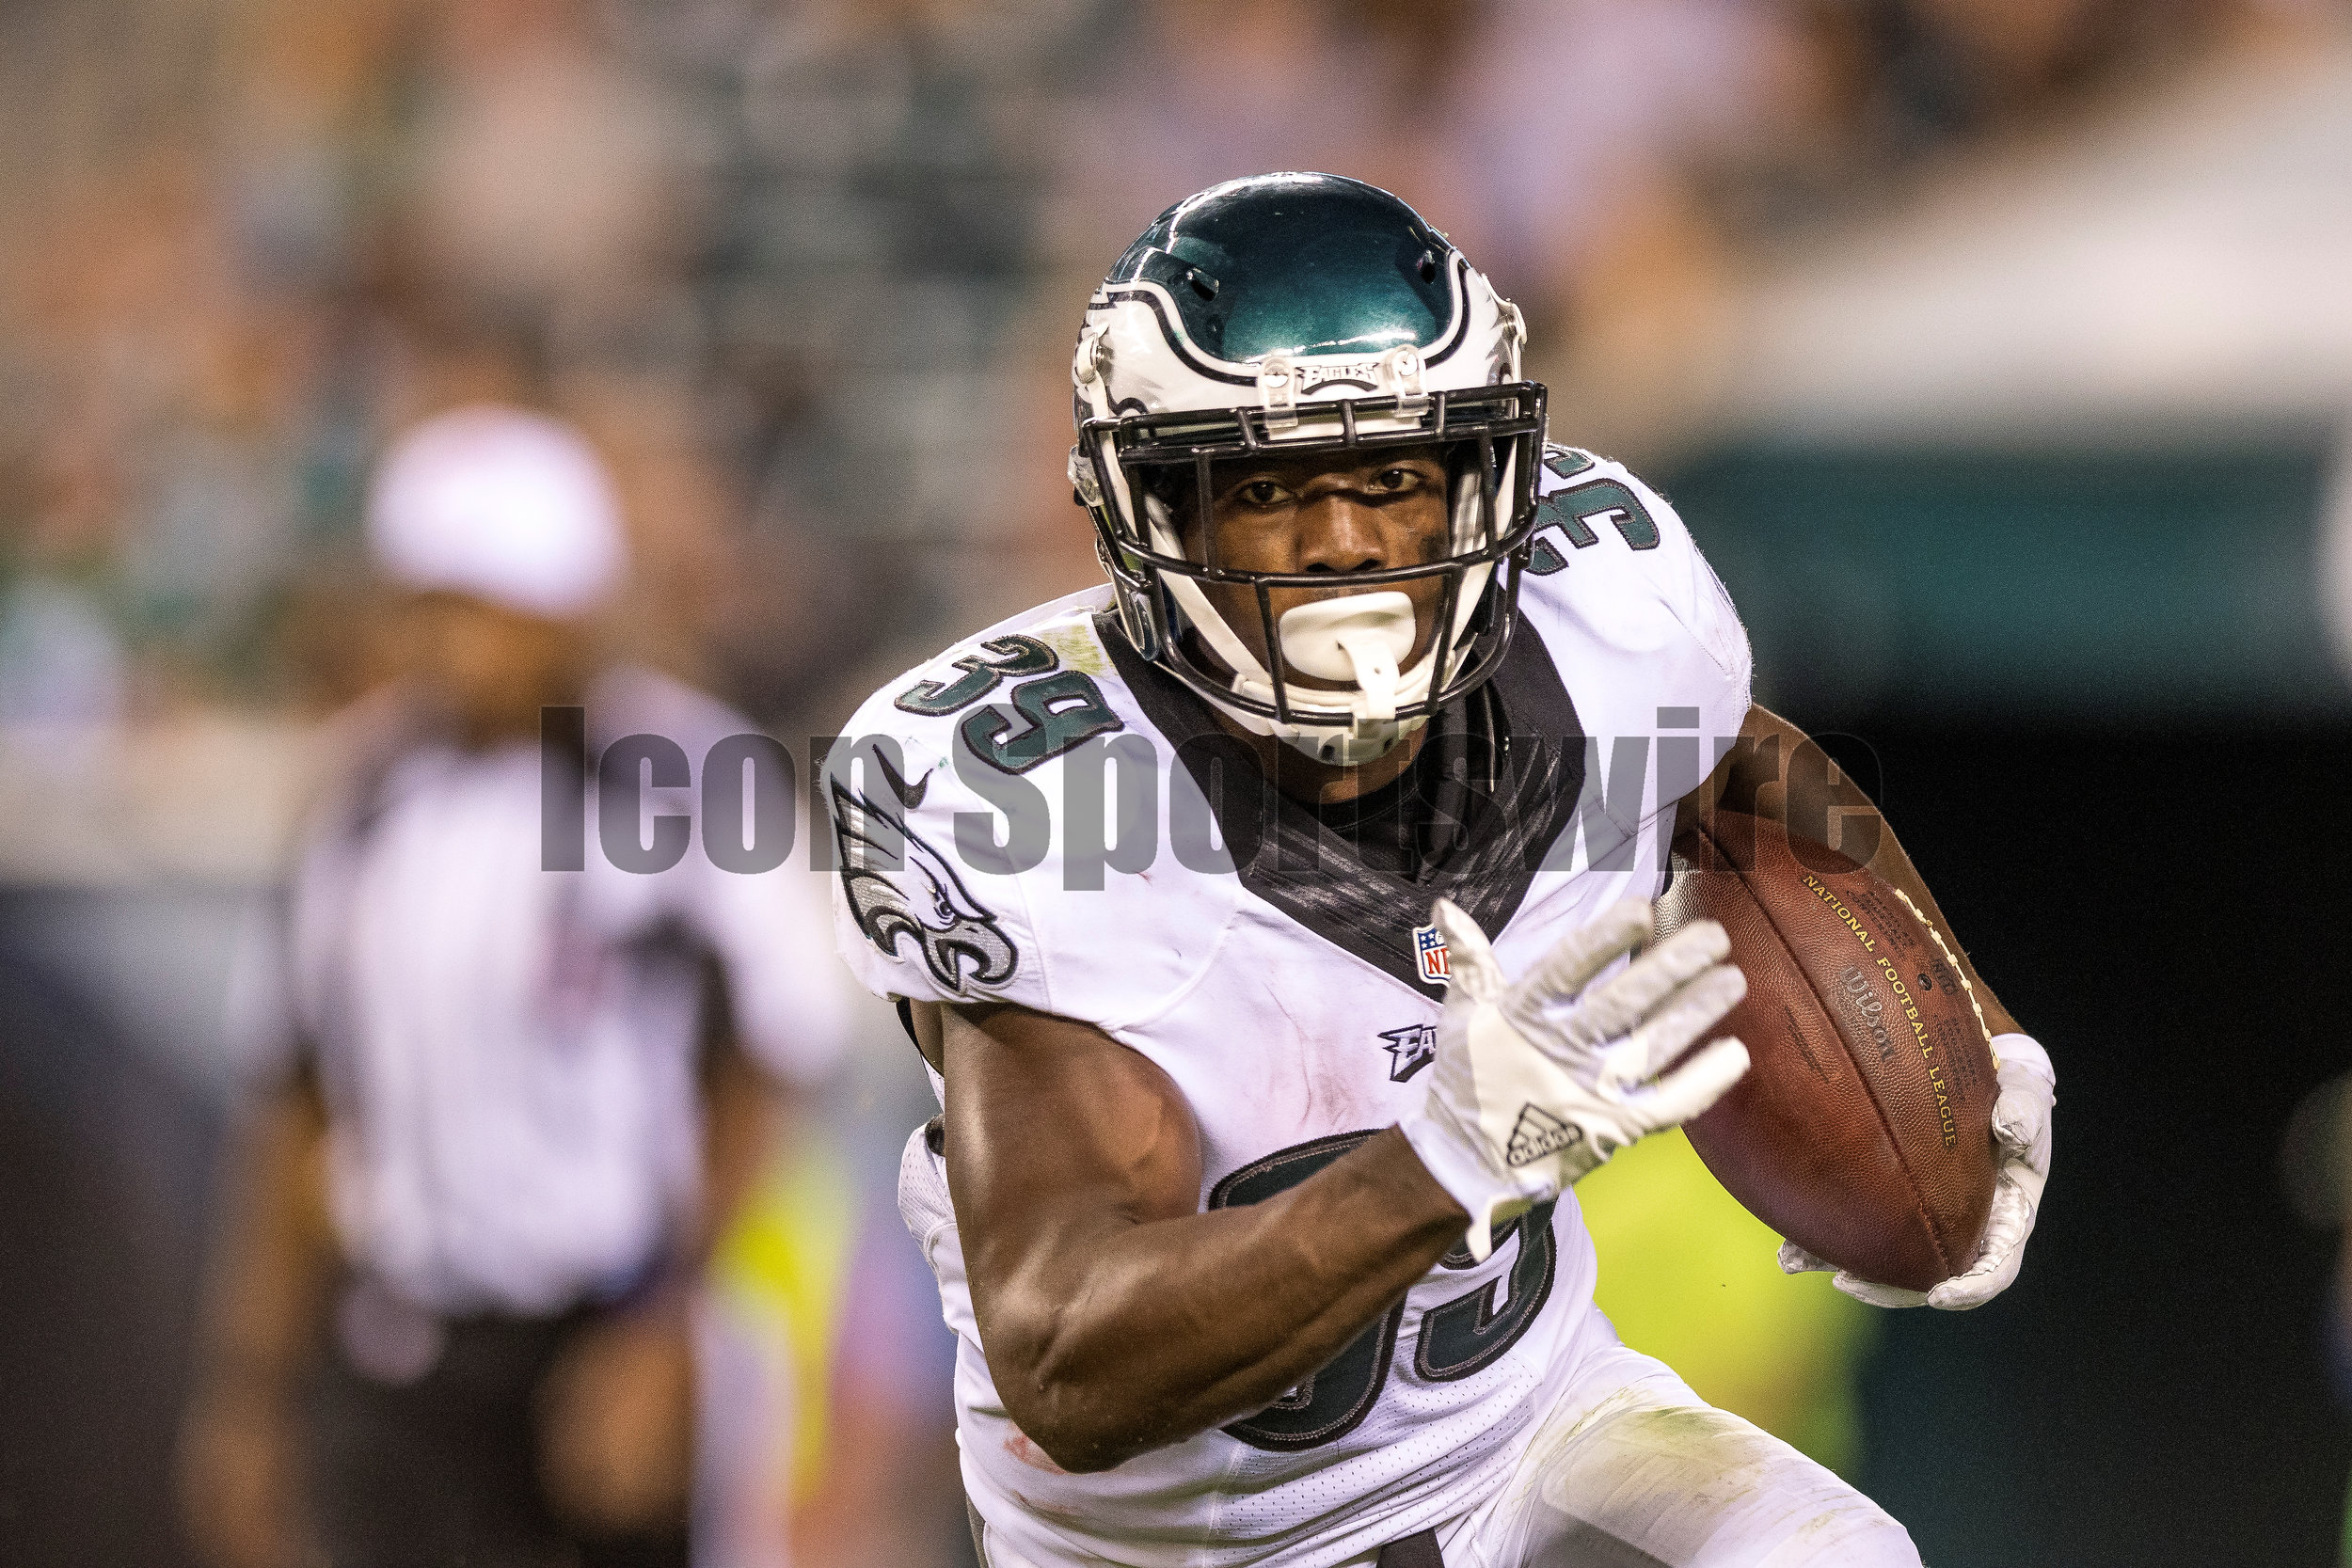 01 September 2016: Philadelphia Eagles wide receiver Byron Marshall (39) charges up the field during the Preseason National Football League game between the New York Jets and the Philadelphia Eagles played at Lincoln Financial Field in Philadelphia, PA. (Photo by Gavin Baker/Icon Sportswire)